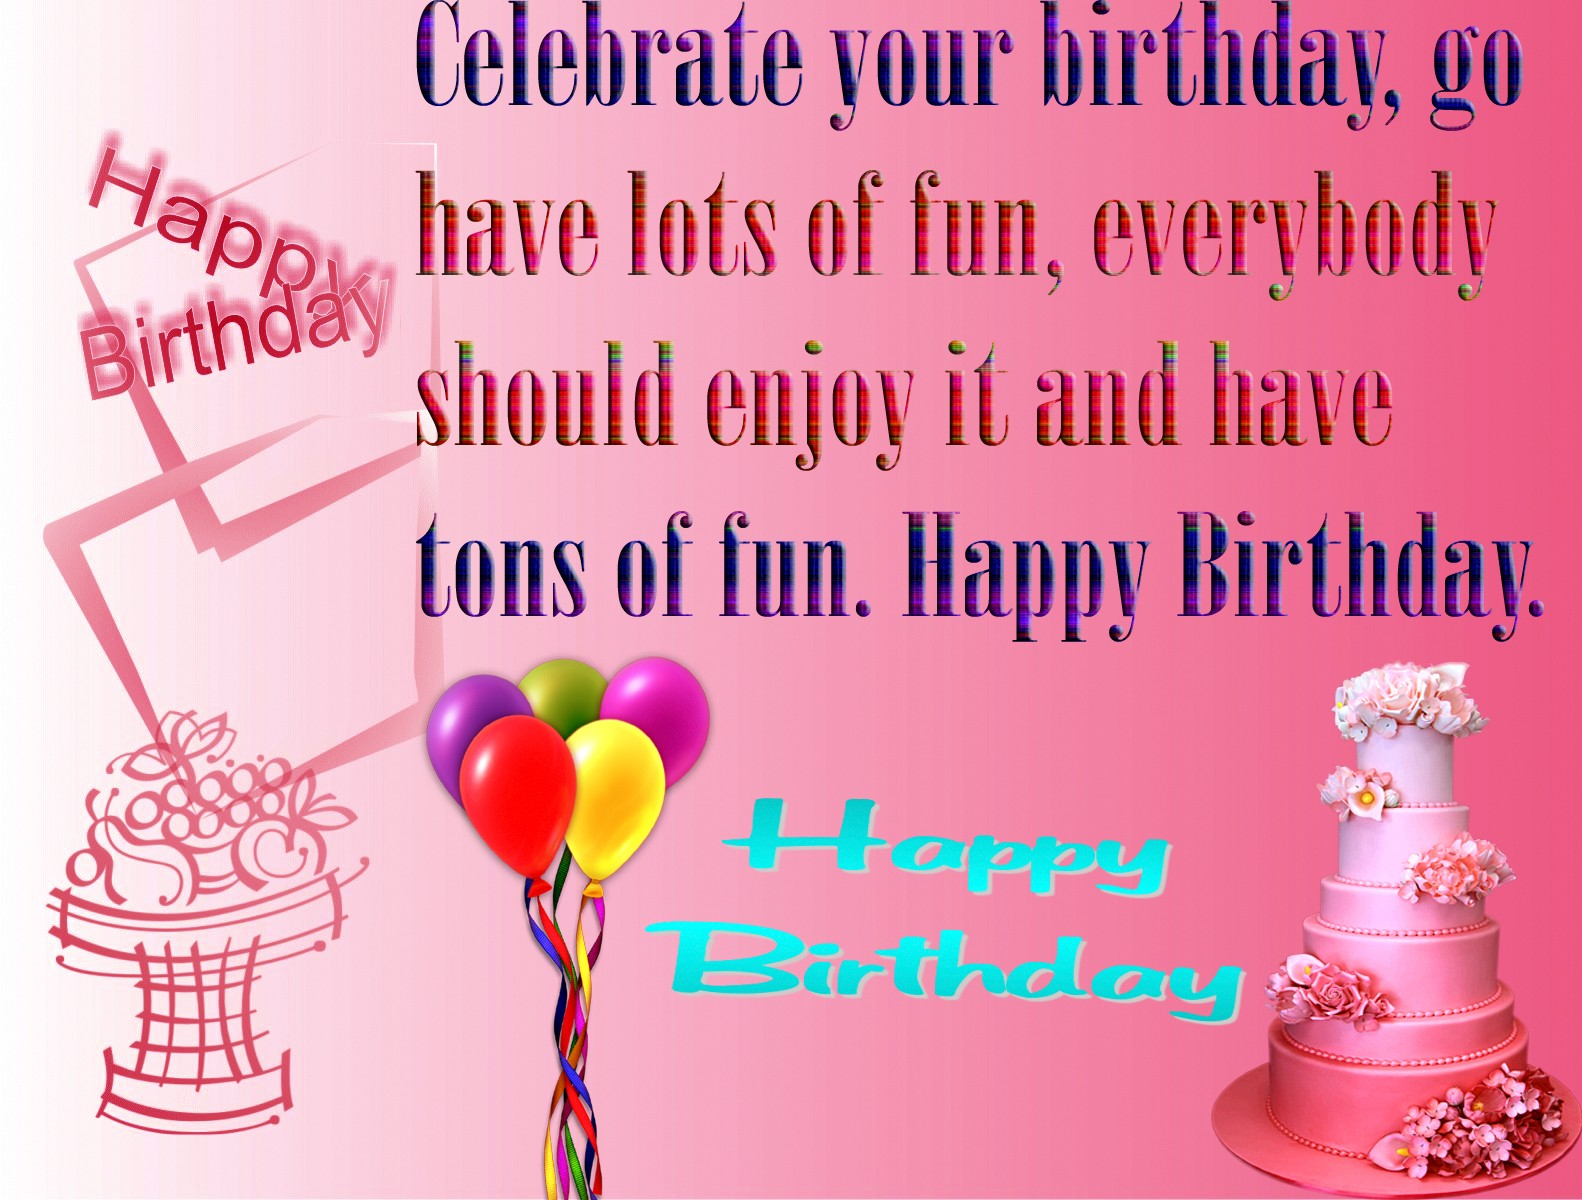 birthday greetings wallpaper ; birthday-wishes-quotes-for-a-brother